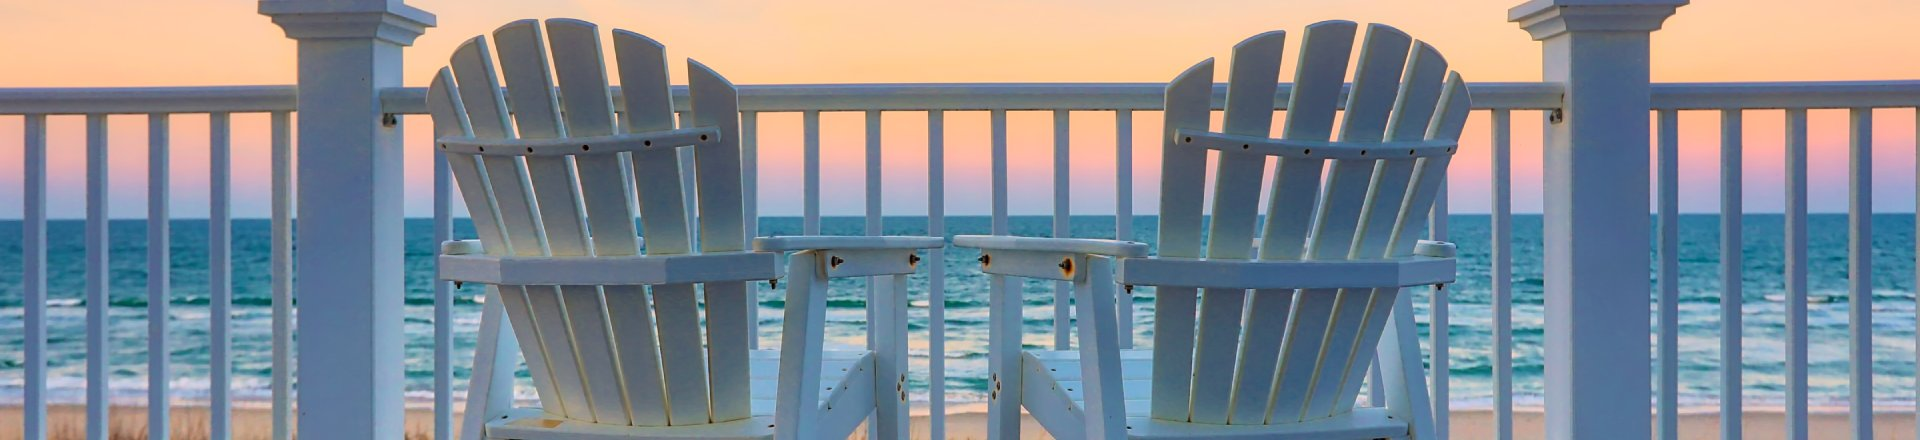 A Deck Balcony Overlooking The Beach, Balcony or Deck Collapses Injury Lawyer